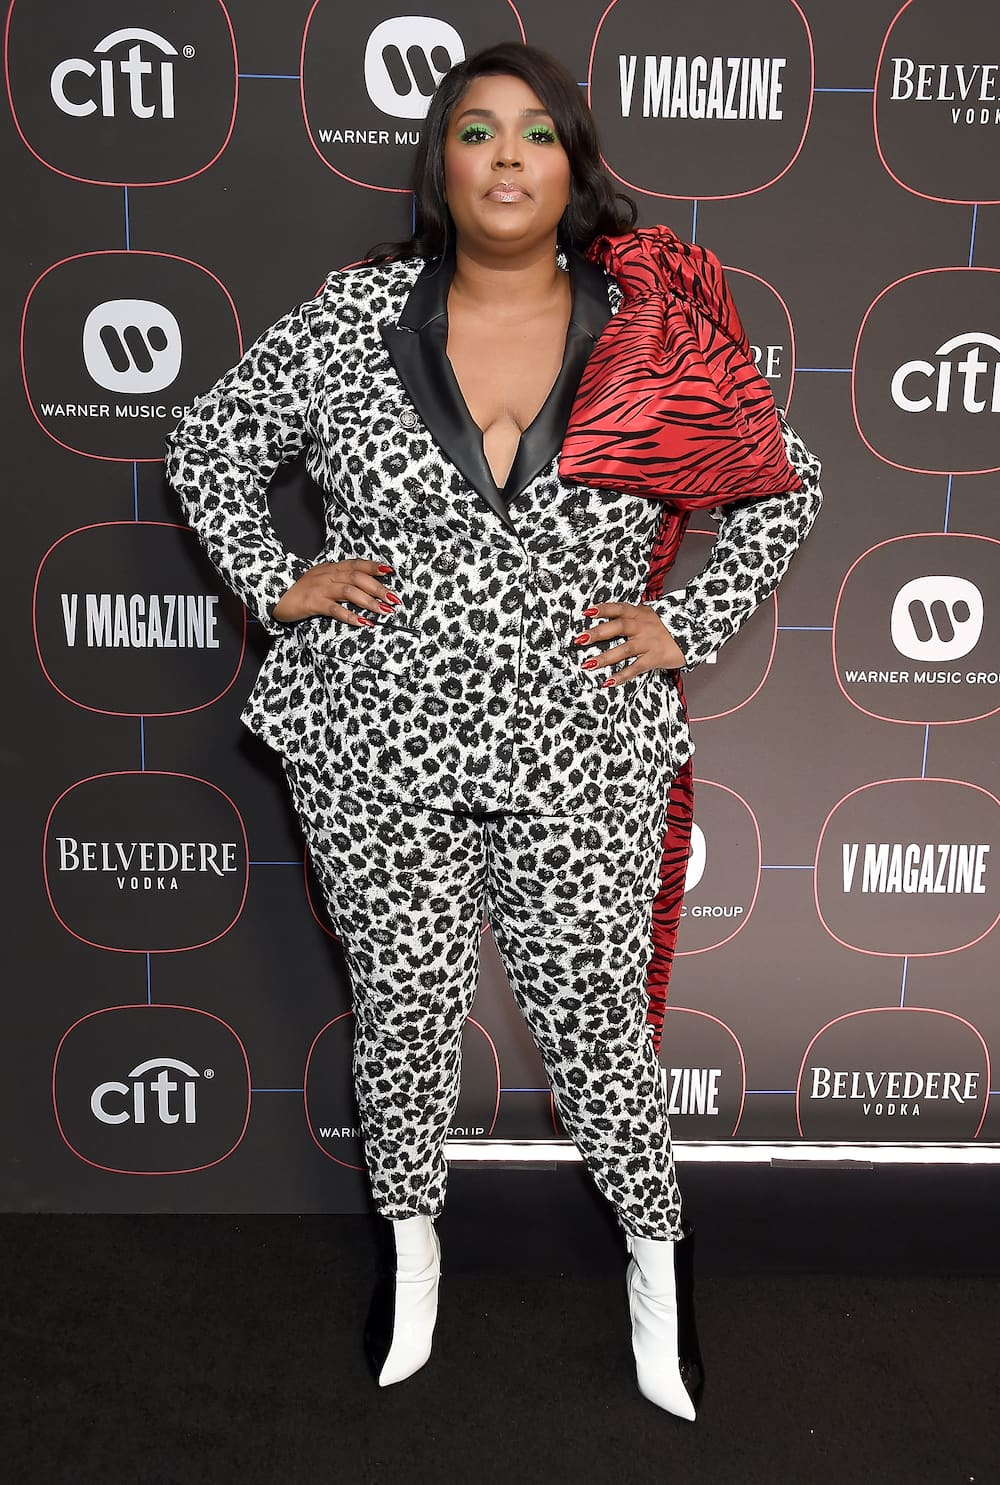 Saturday night live Lizzo outfit